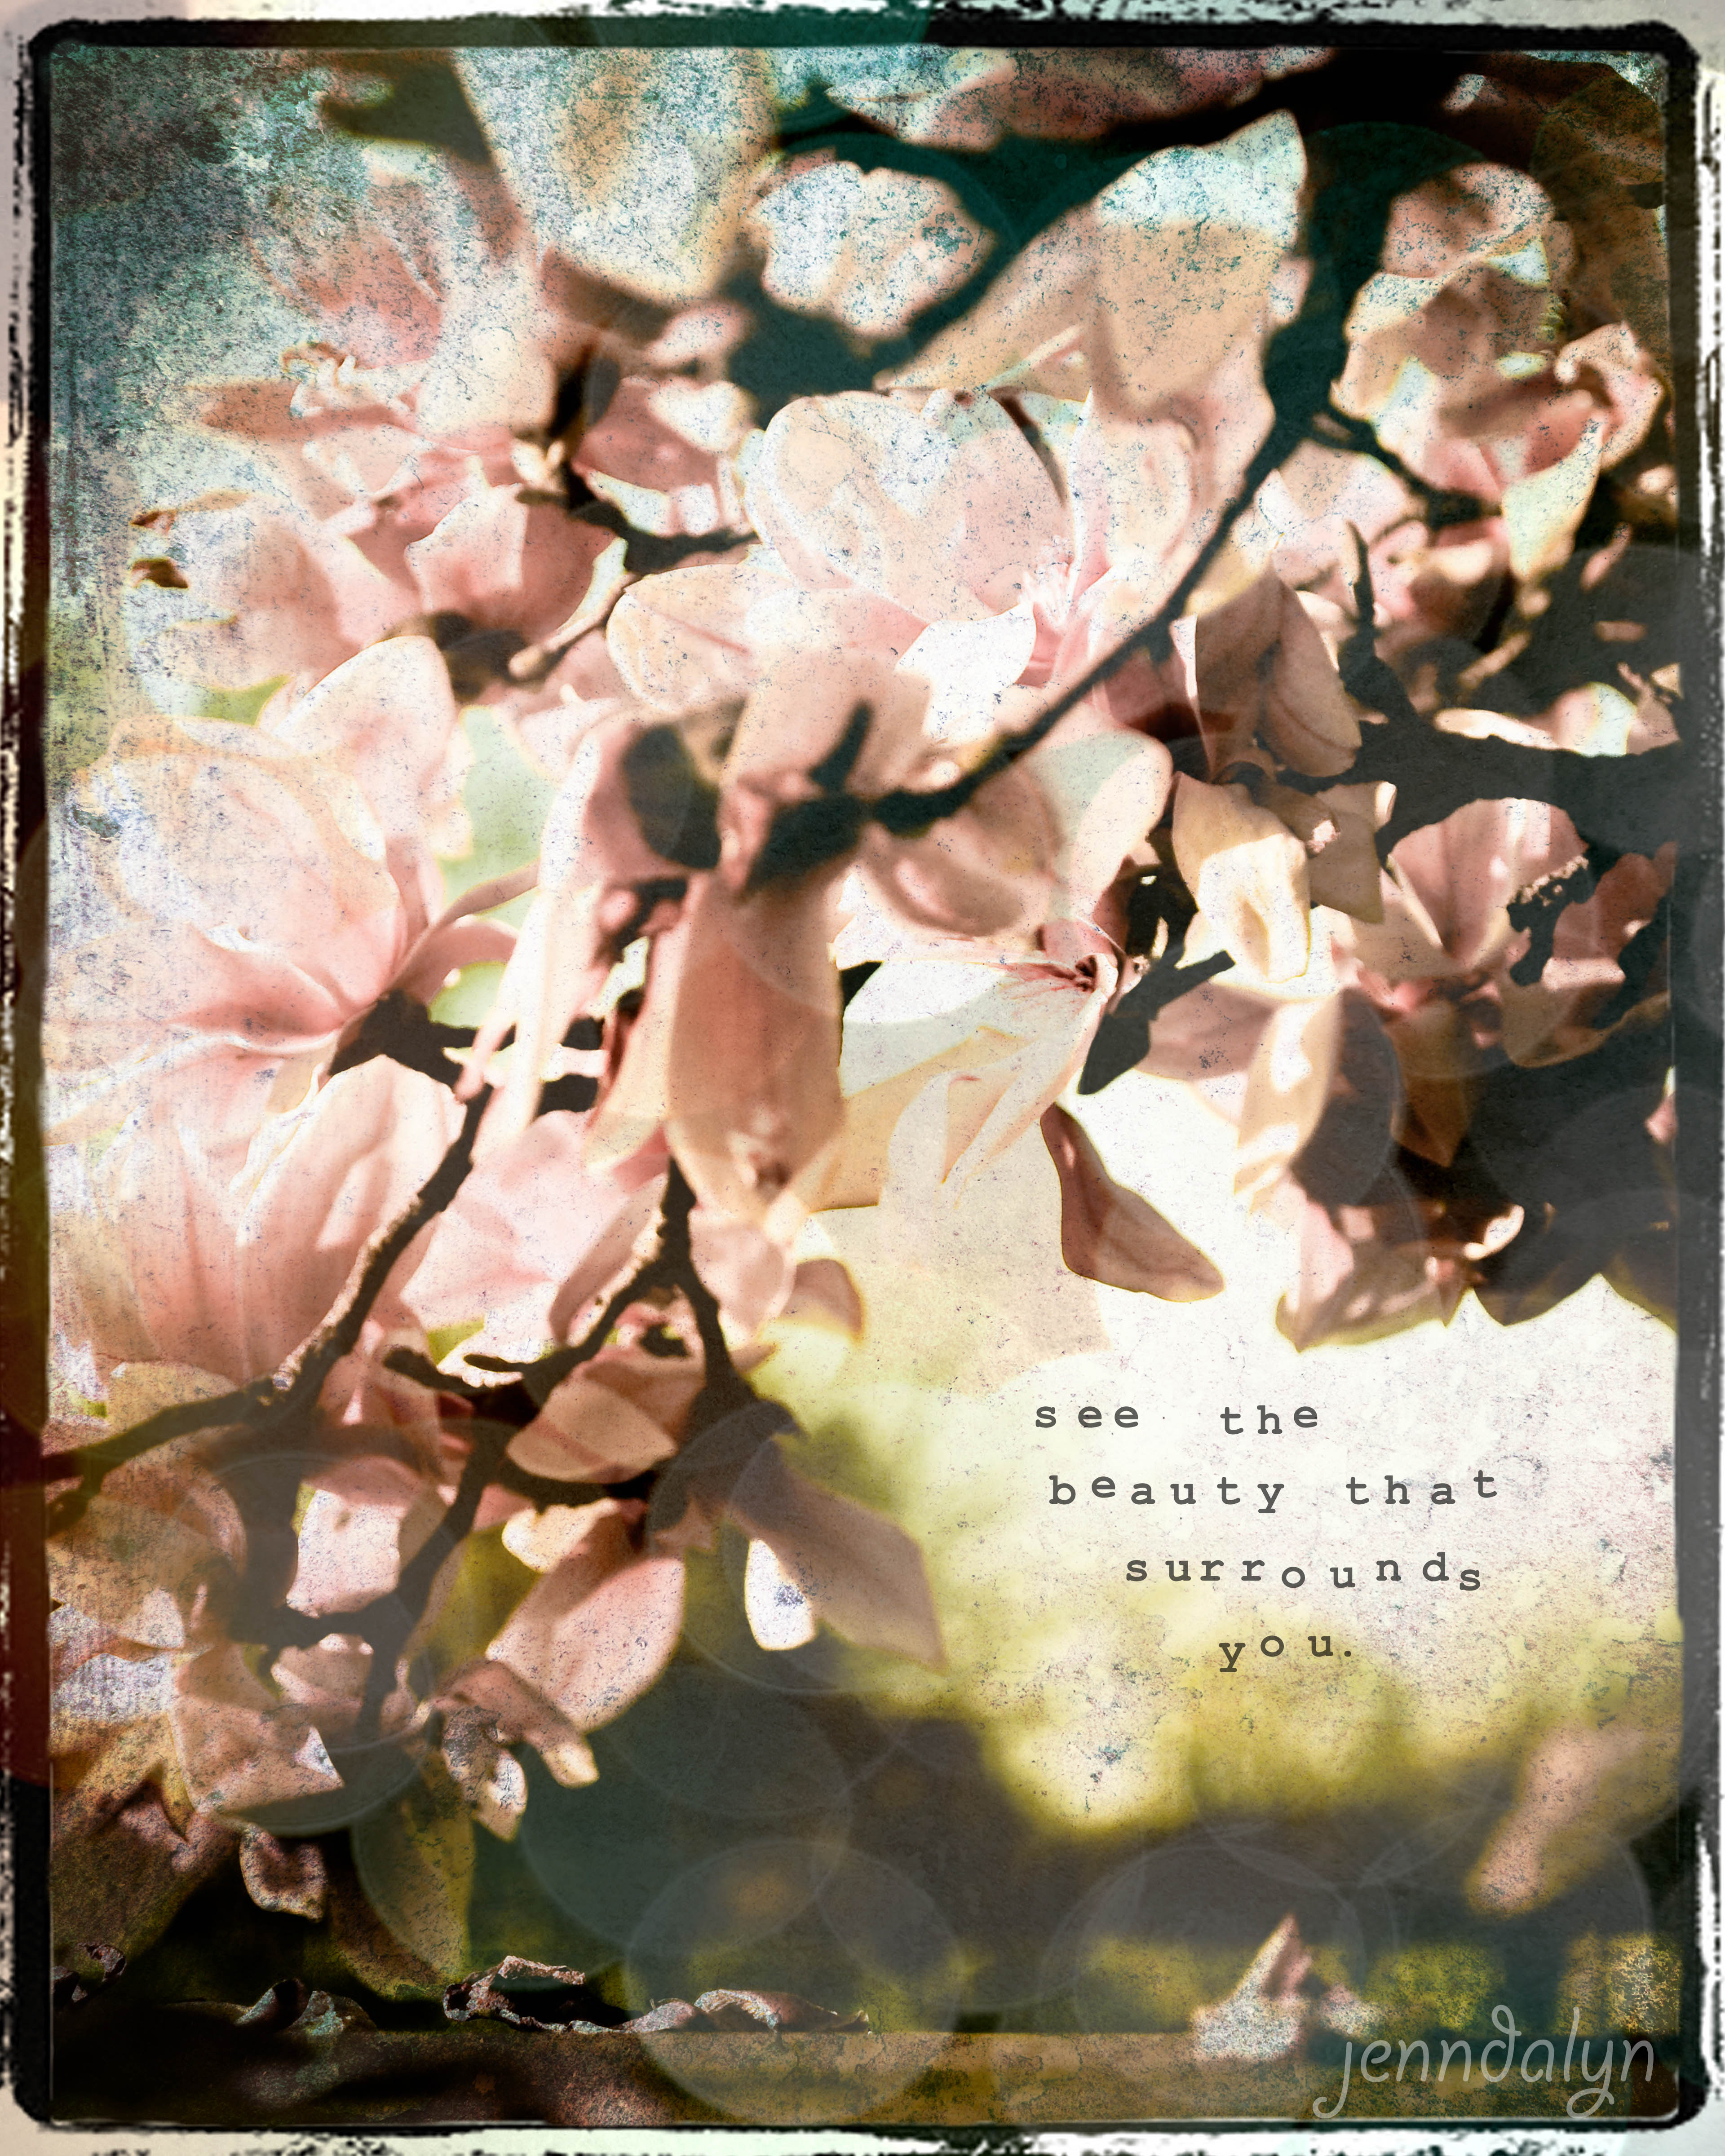 Surrounded 8 X 10 Fine Art Photograph Magnolia Tree Photography Inspirational Quote Spring Landscape Romantic Home Decor Pink Wall Art Jenndalyn Art Online Store Powered By Storenvy